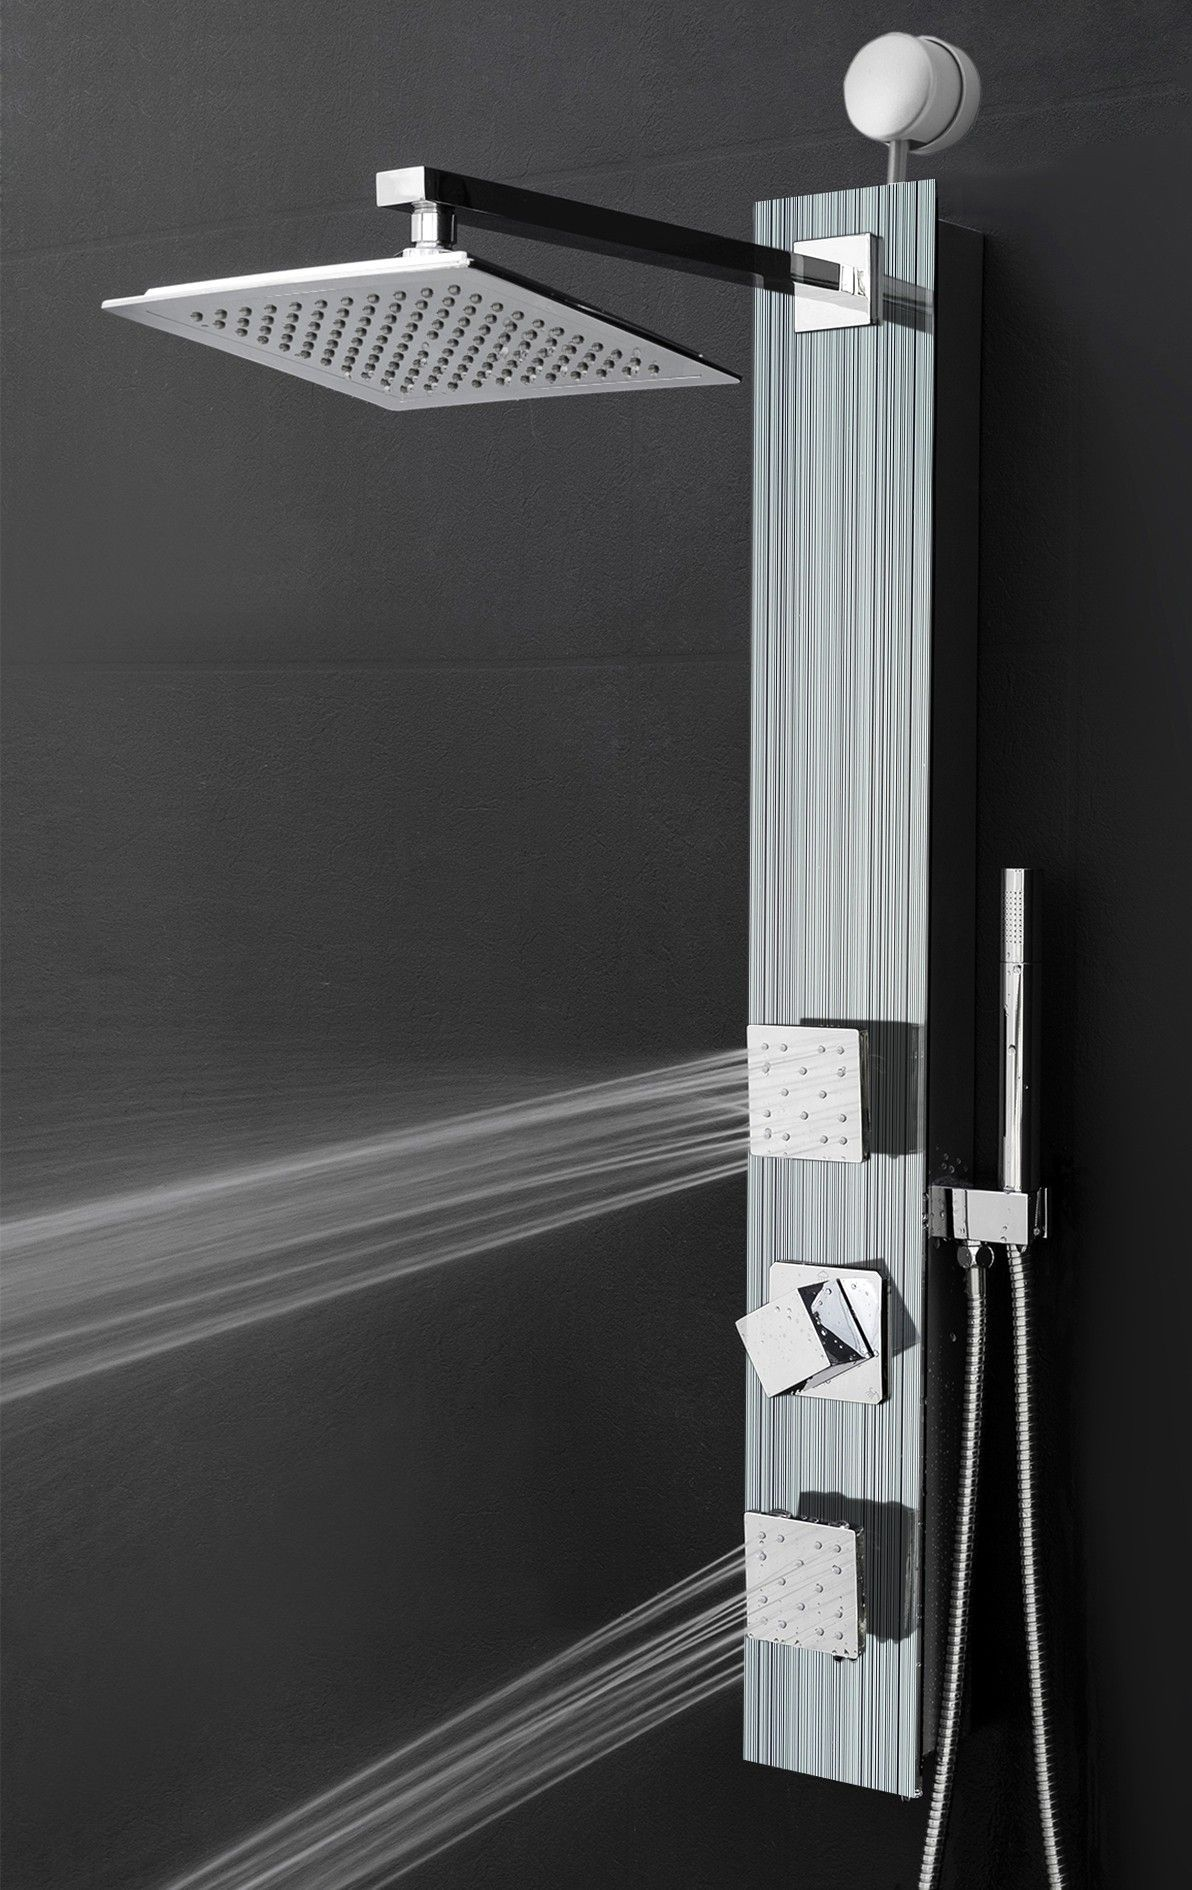 Easy Connect Shower Panel System In Silver Tempered Glass With Rainfall Shower  Head And Shower Wand   Shower Panels   Other Products